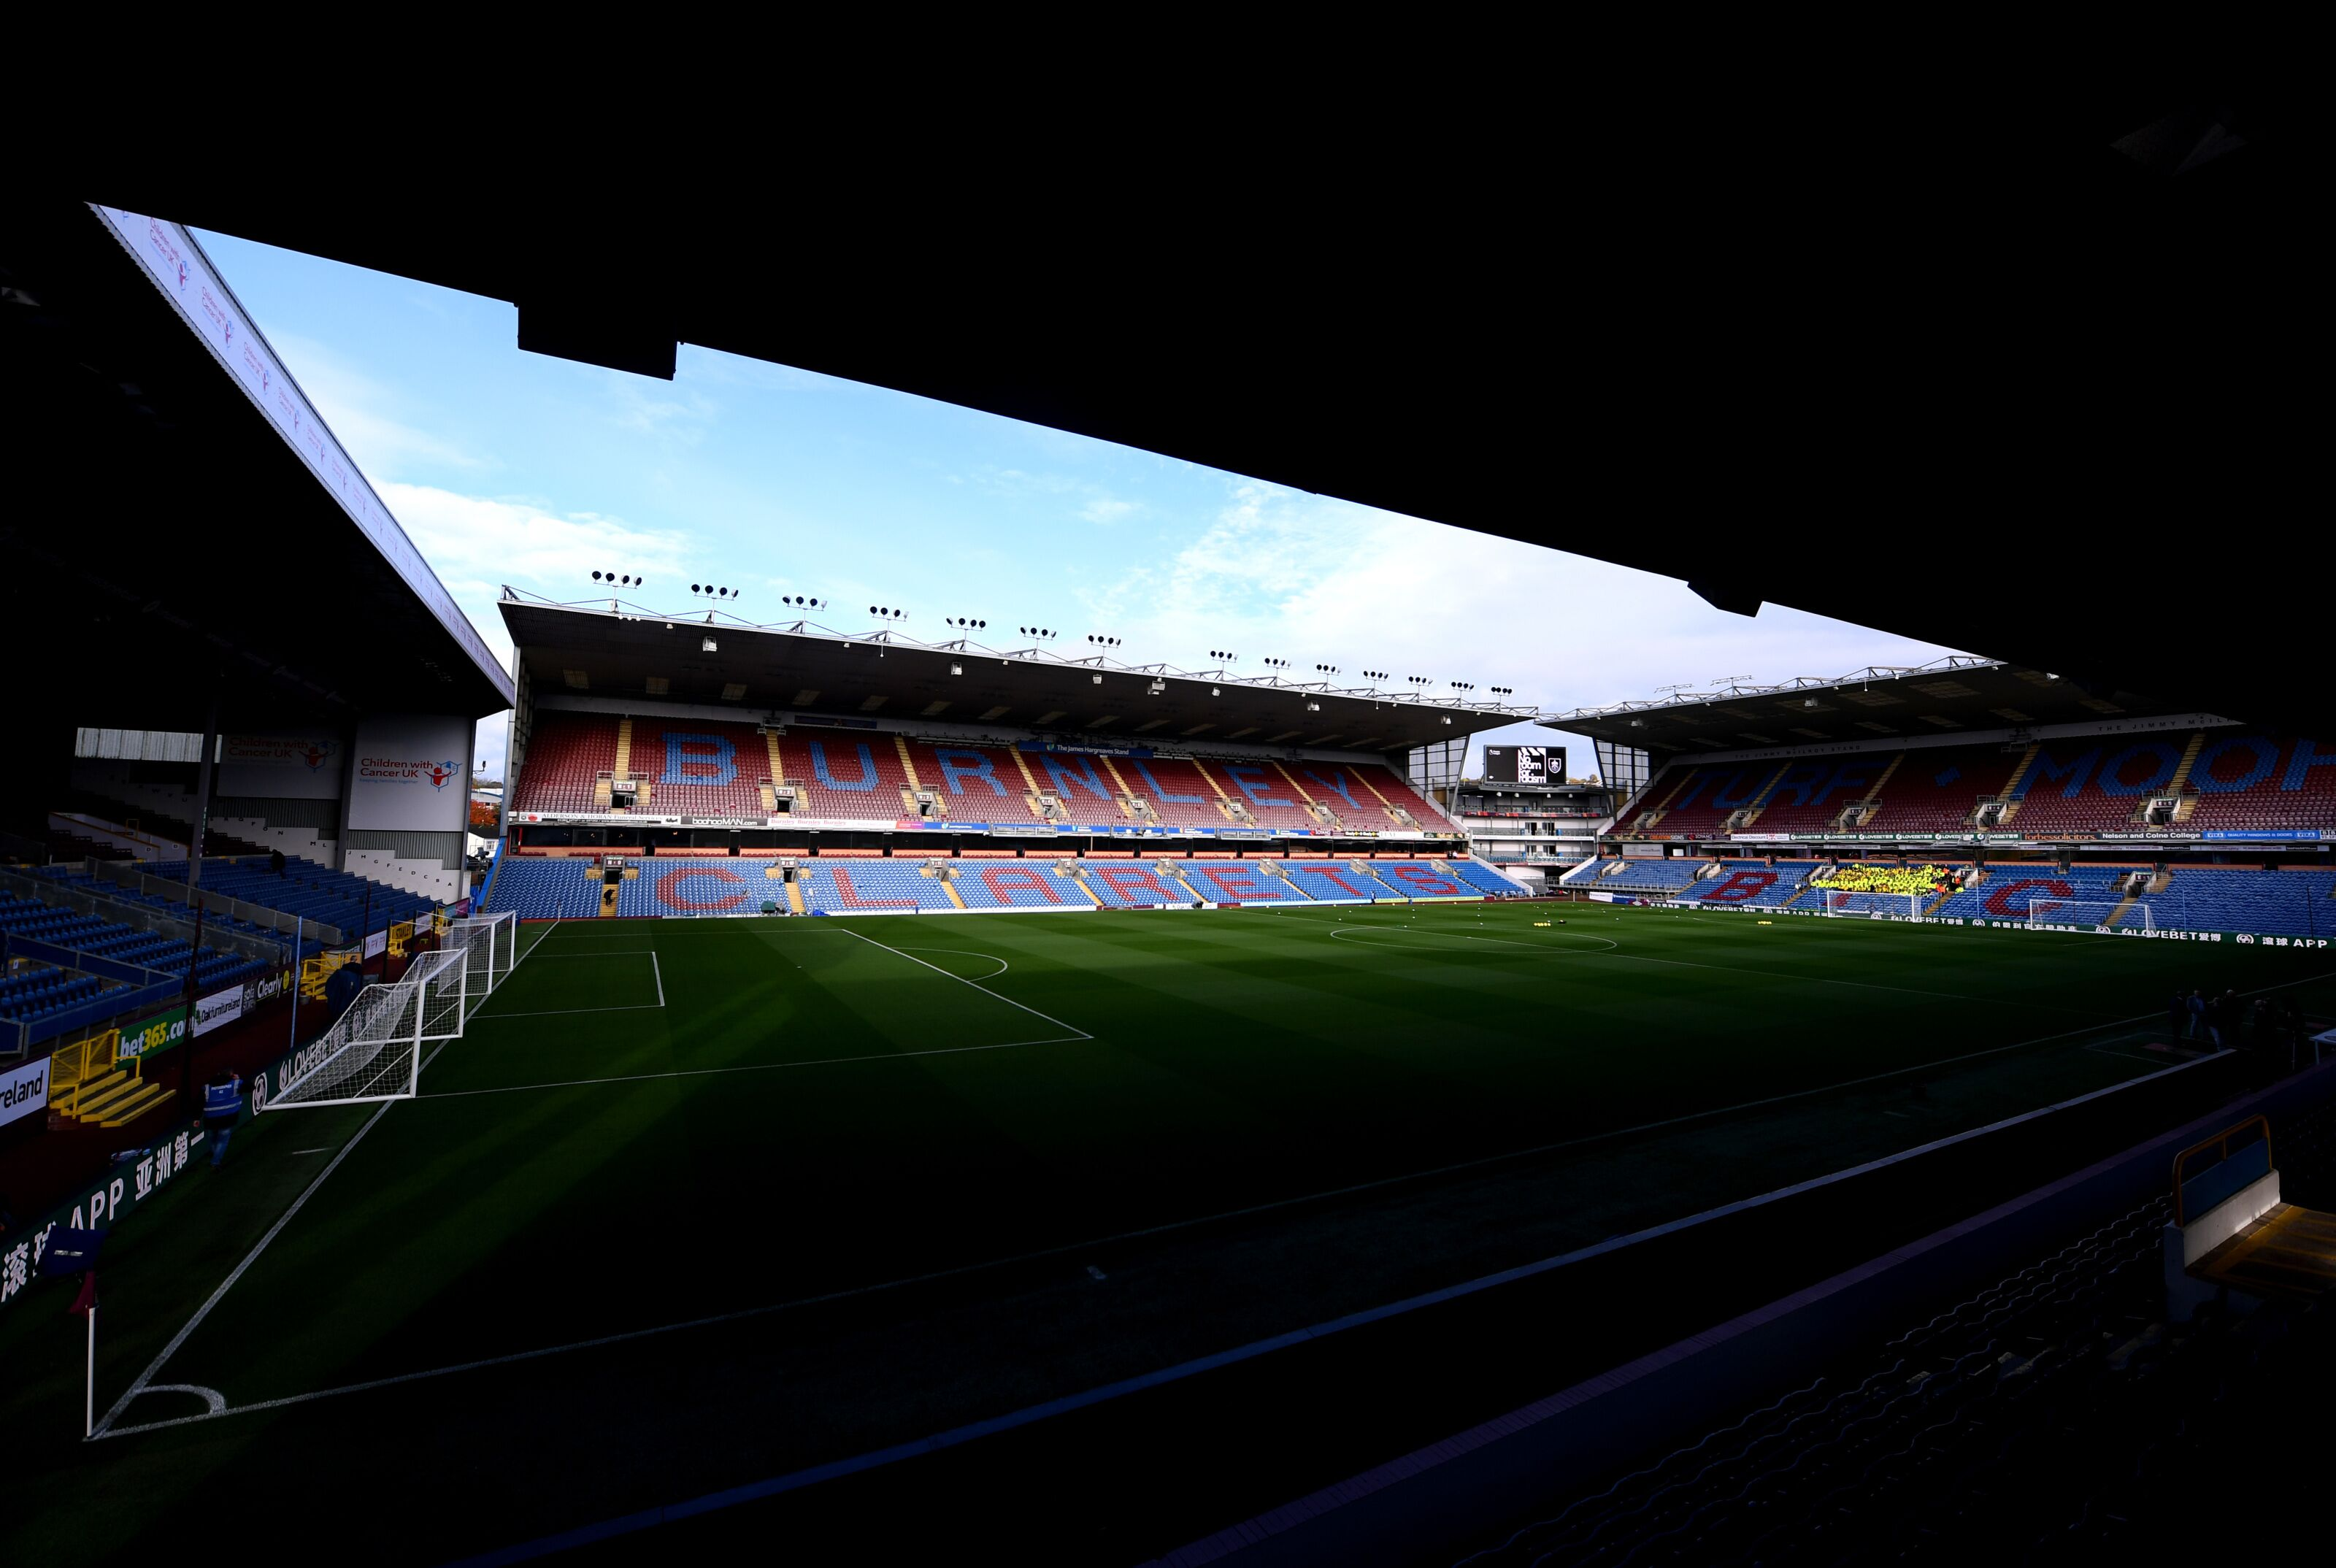 Preview: Newcastle aim to hit 25 points at Turf Moor